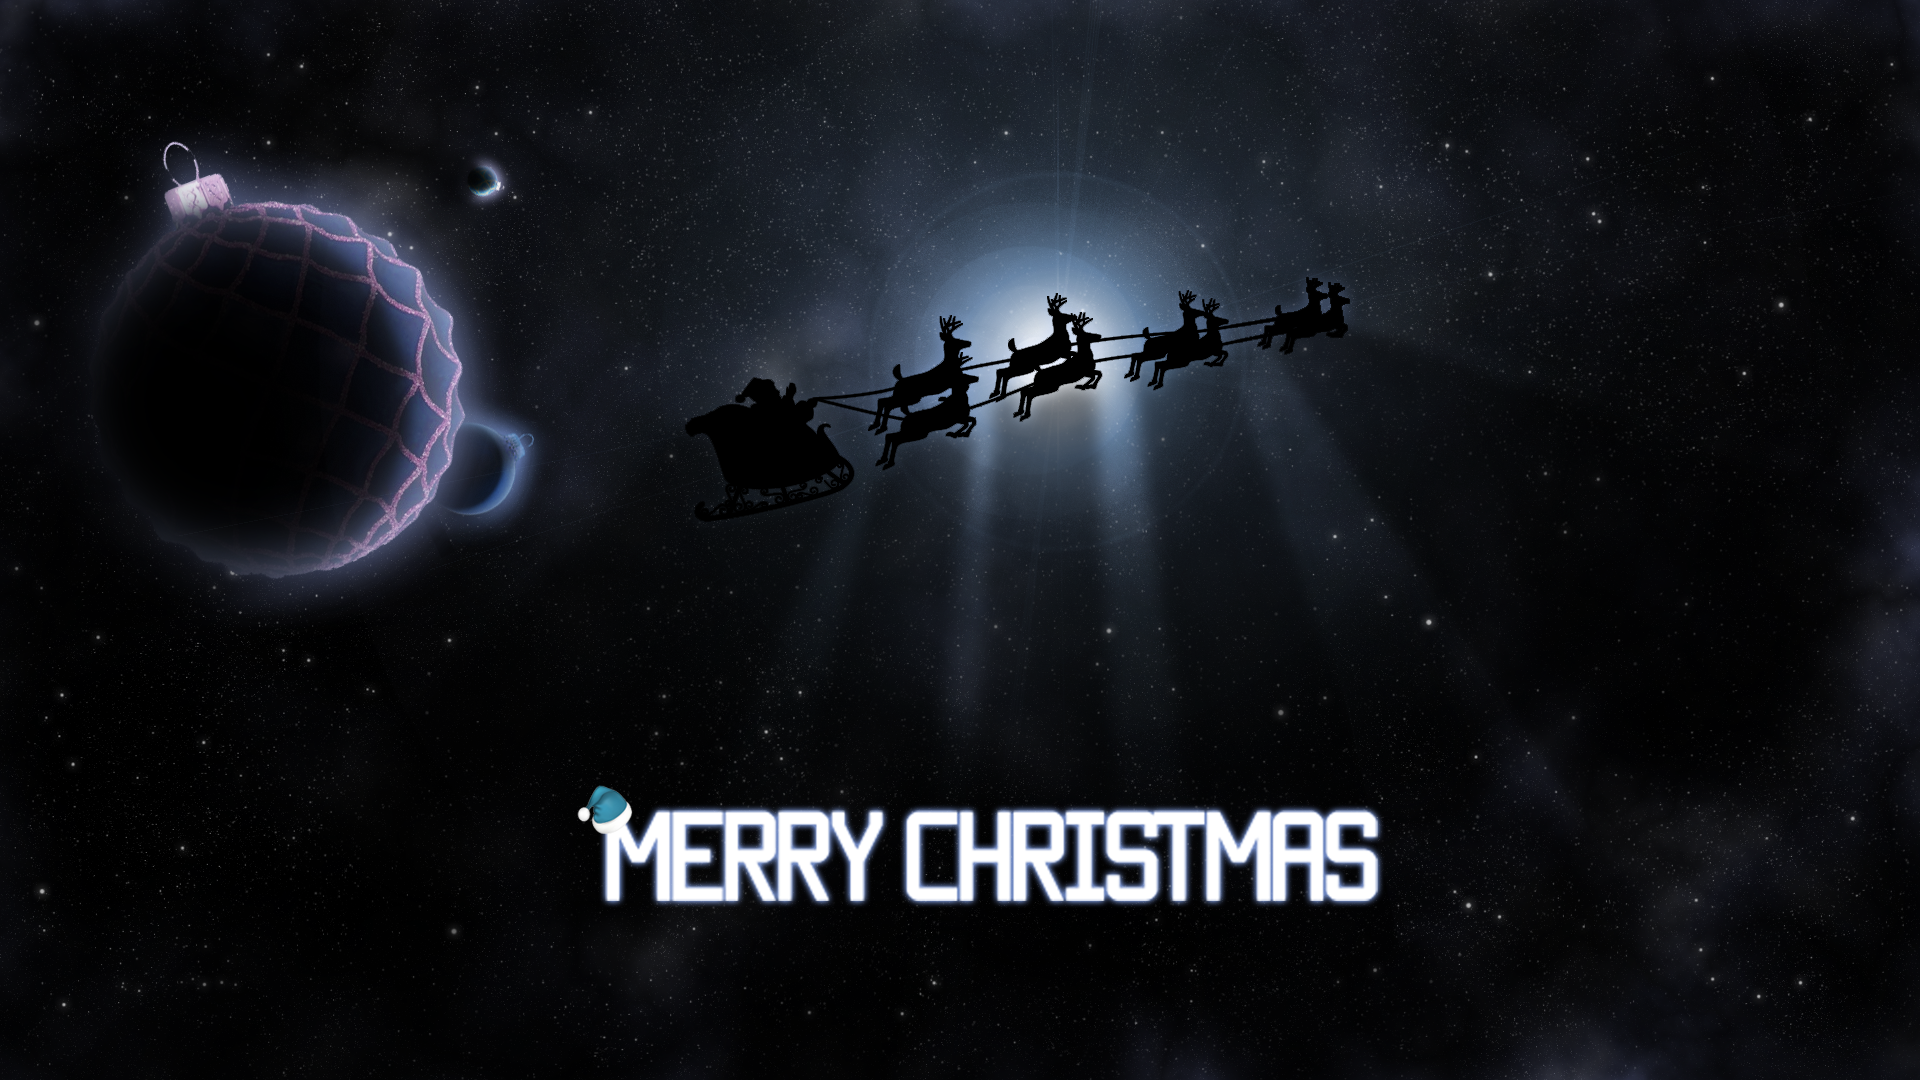 2023070_138795361891_ChristmasCard.png